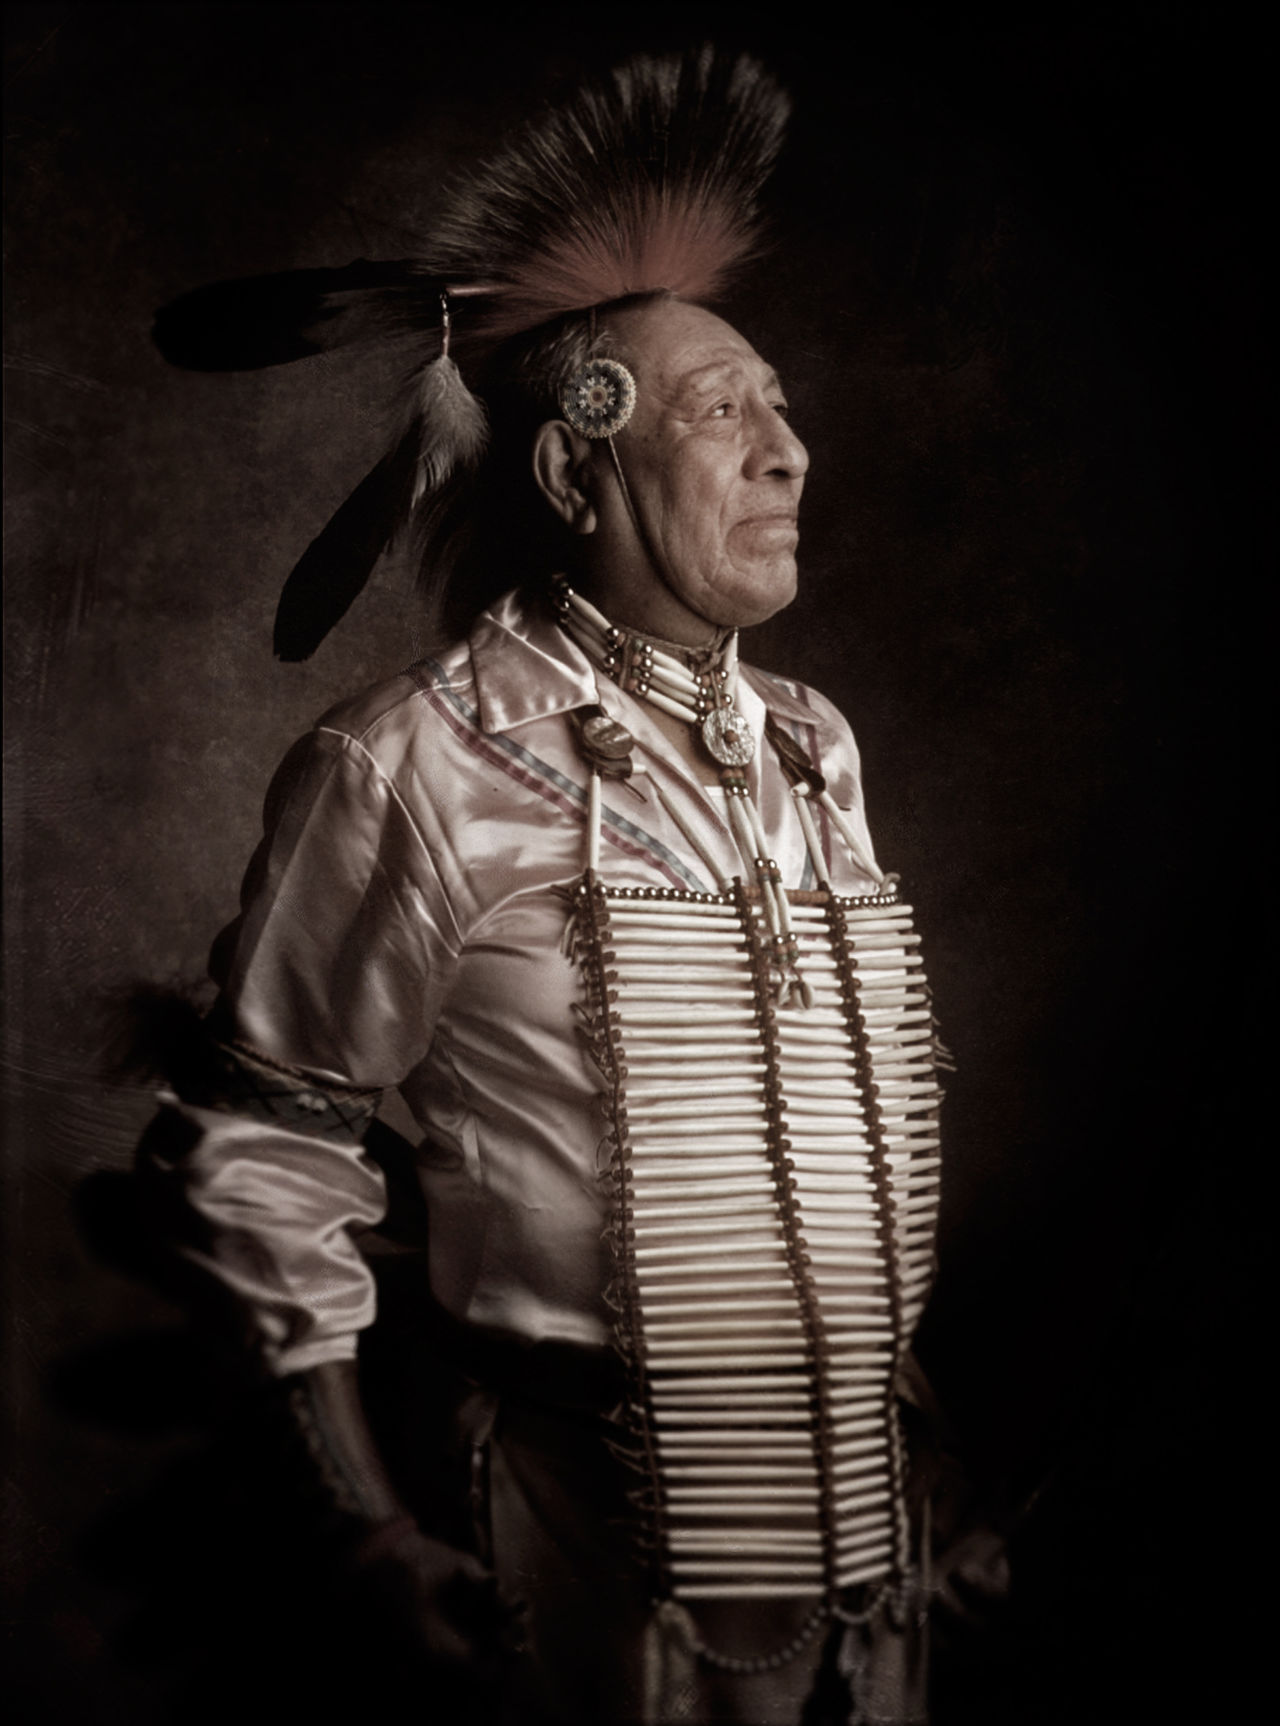 Beautiful stock photos of native american, old-fashioned, adults only, one man only, one person